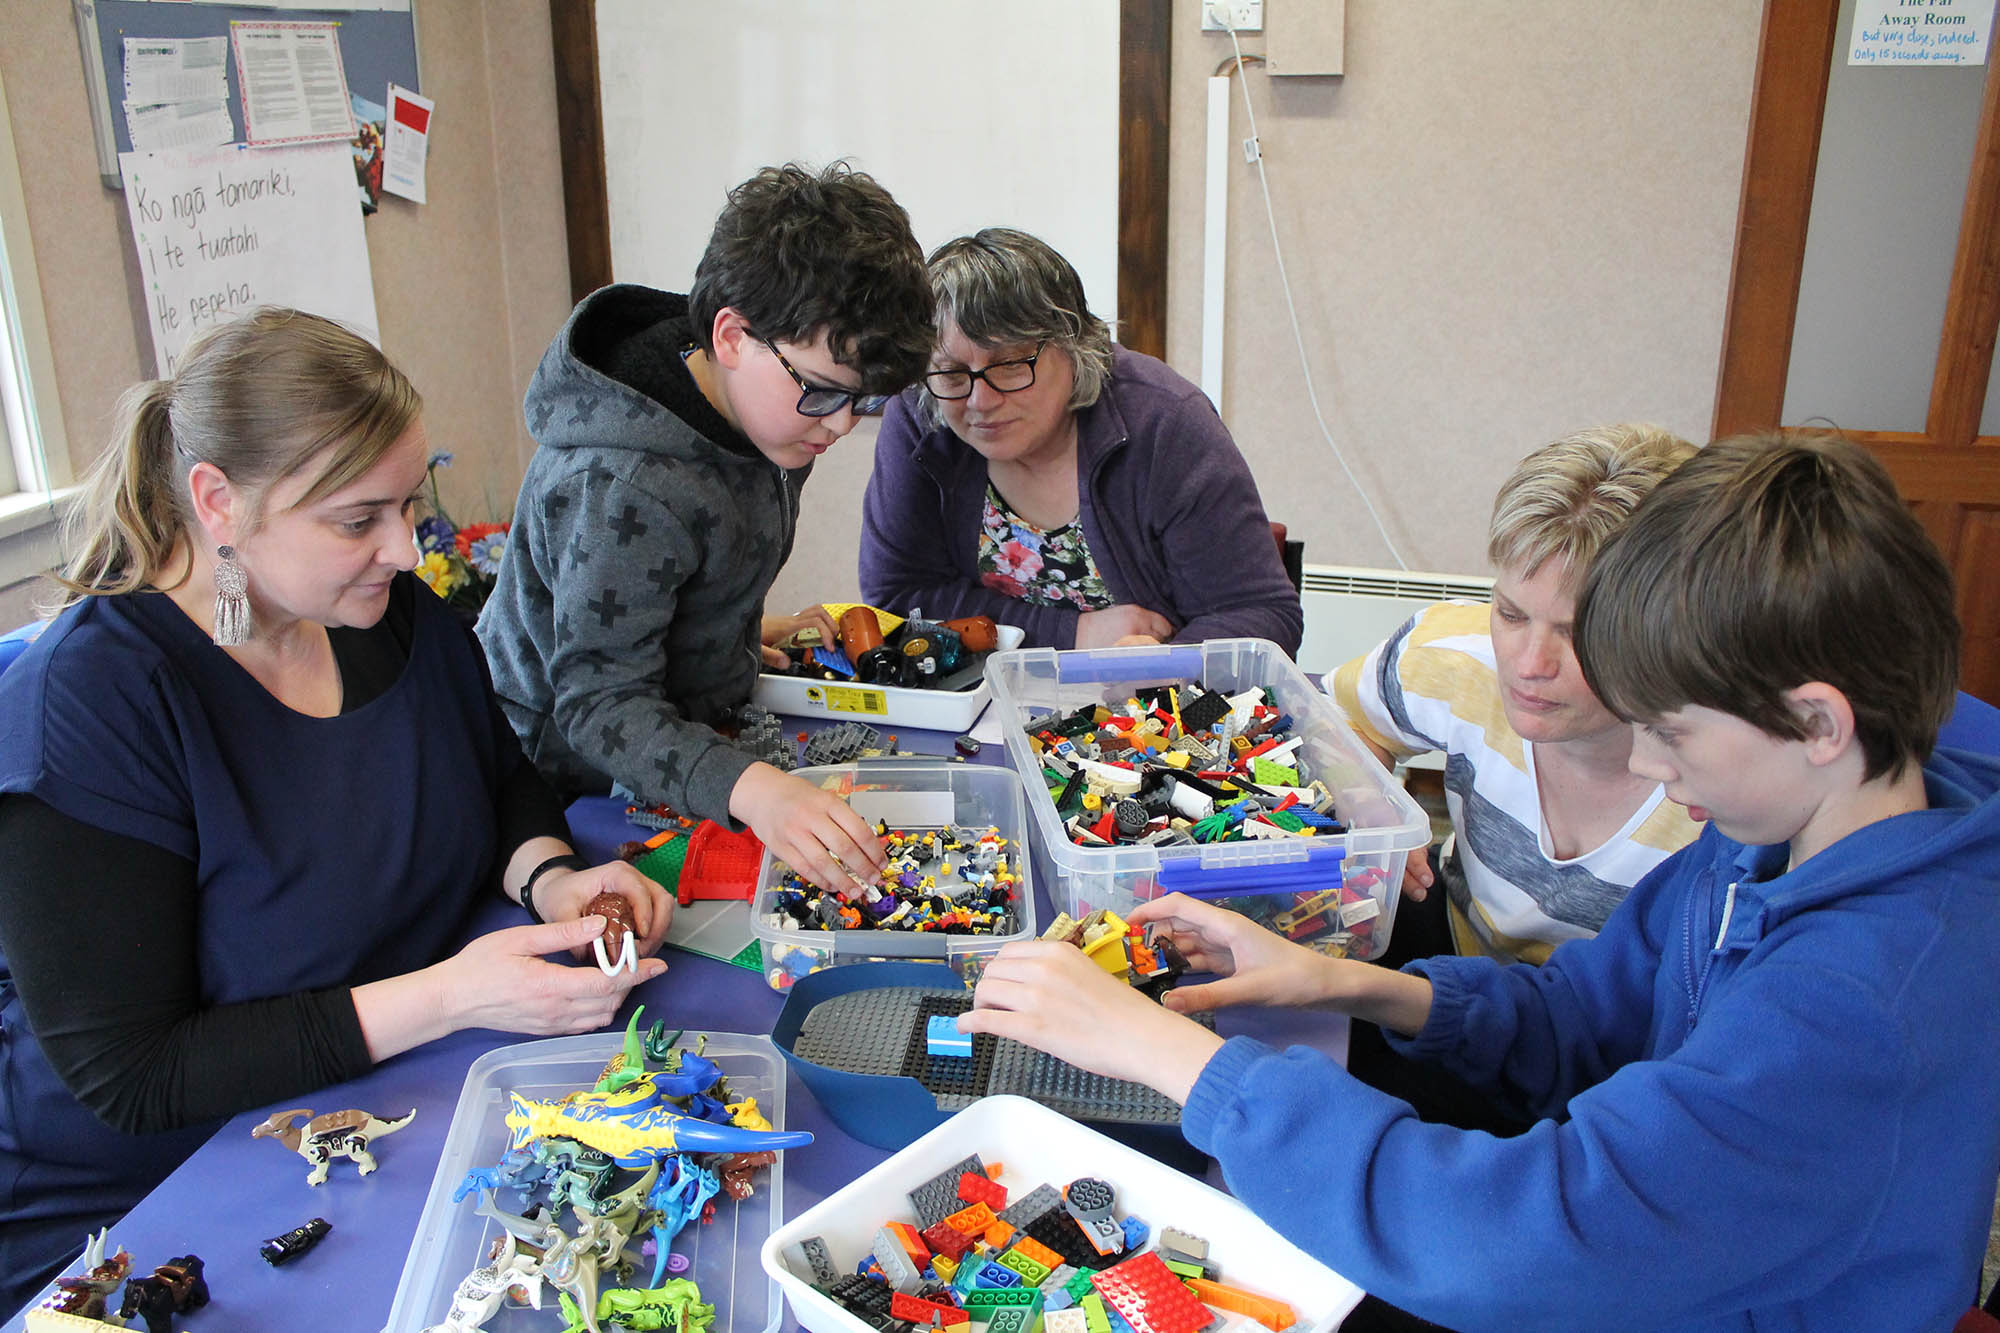 Lego play among services offered by Autism New Zealand